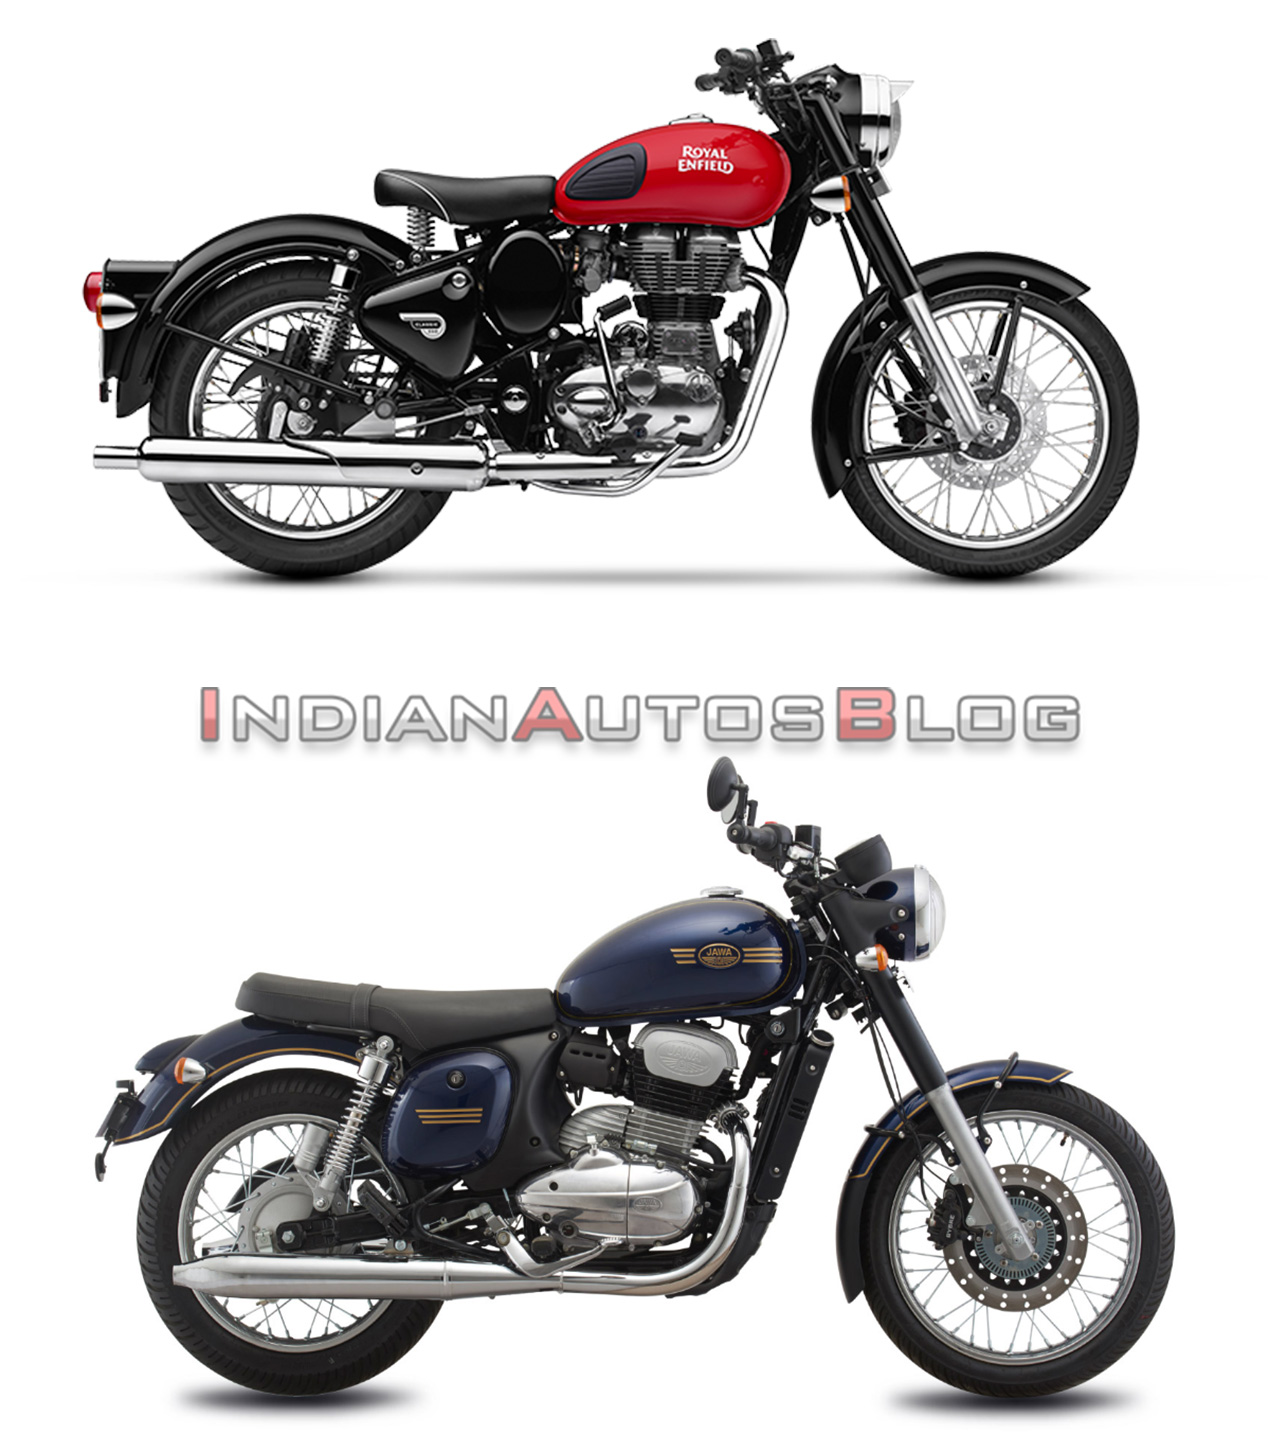 Jawa Forty Two Vs Royal Enfield Classic 350 Battle Of The Retro Classics